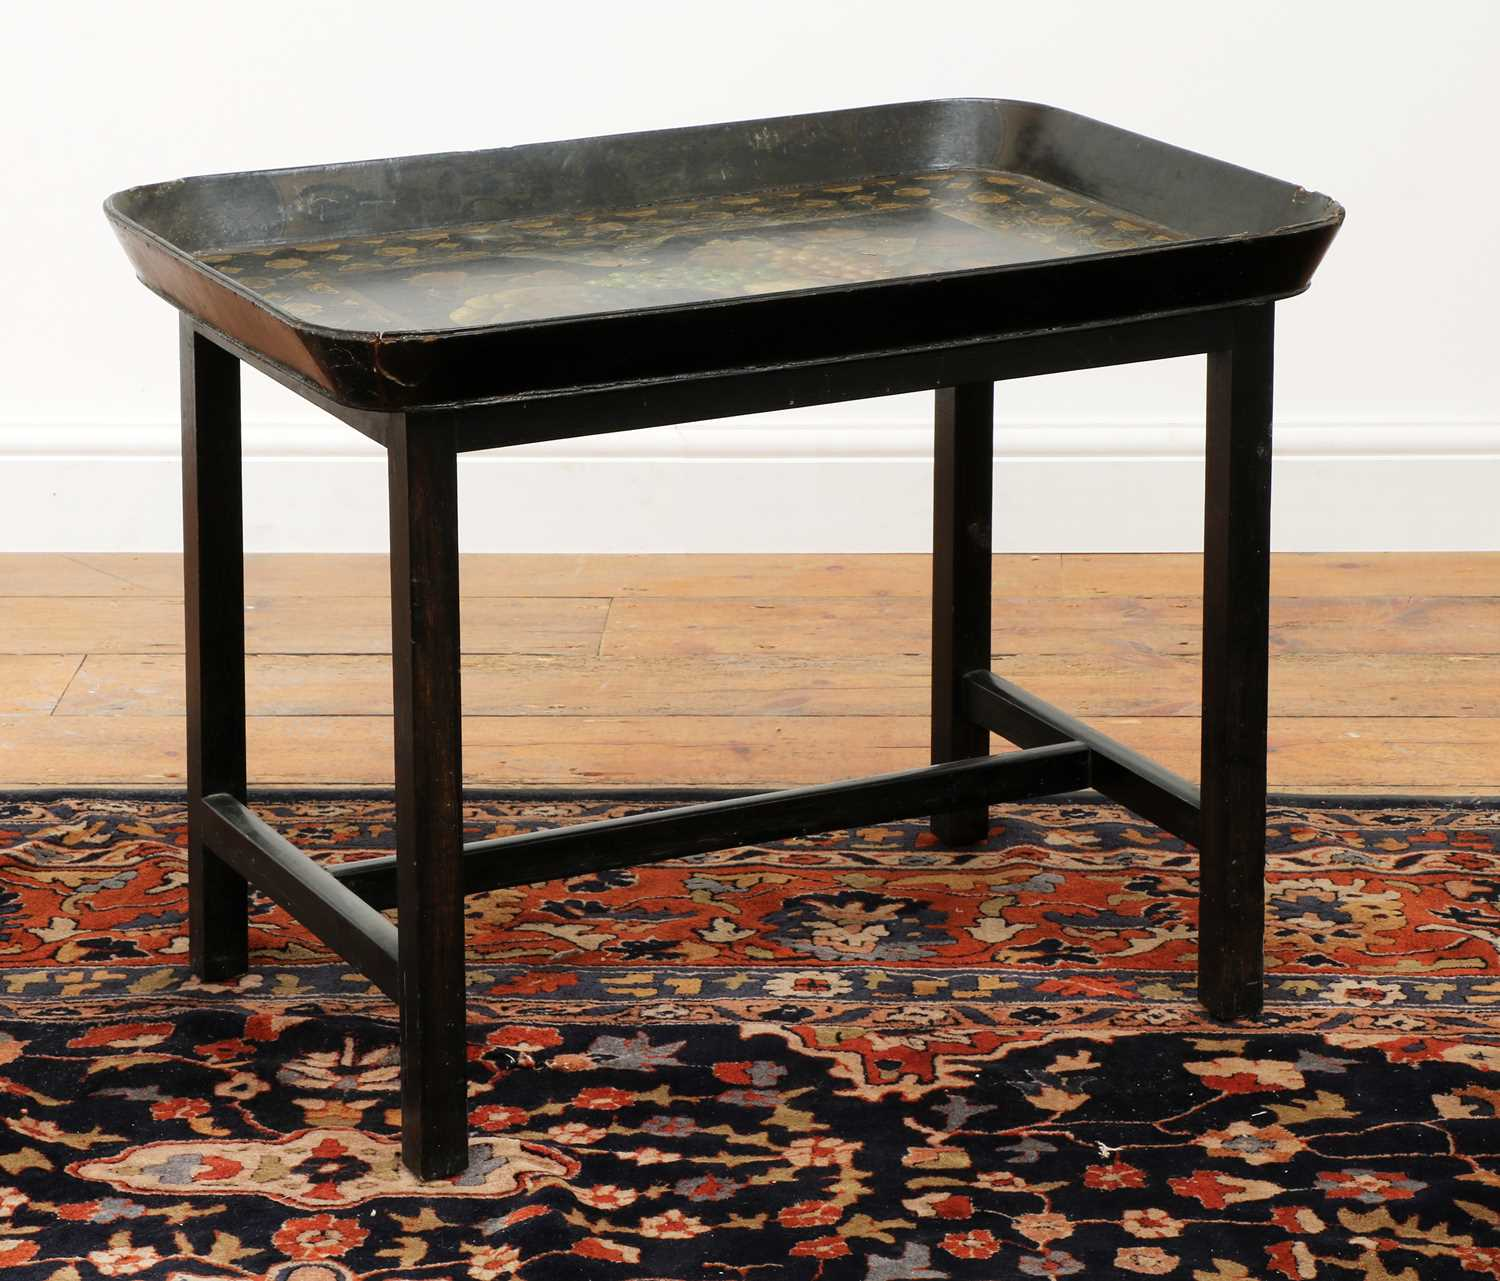 A Regency black lacquer galleried tray on stand, - Image 3 of 5